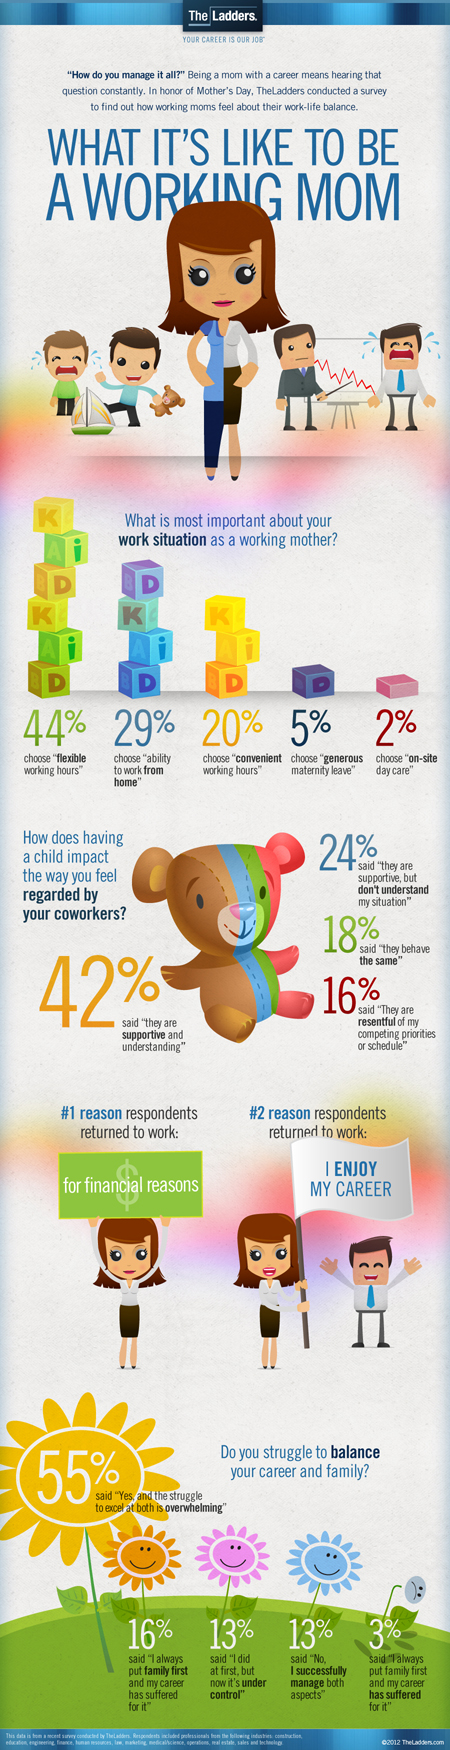 What-It's-Like-To-Be-A-Working-Mom-infographic